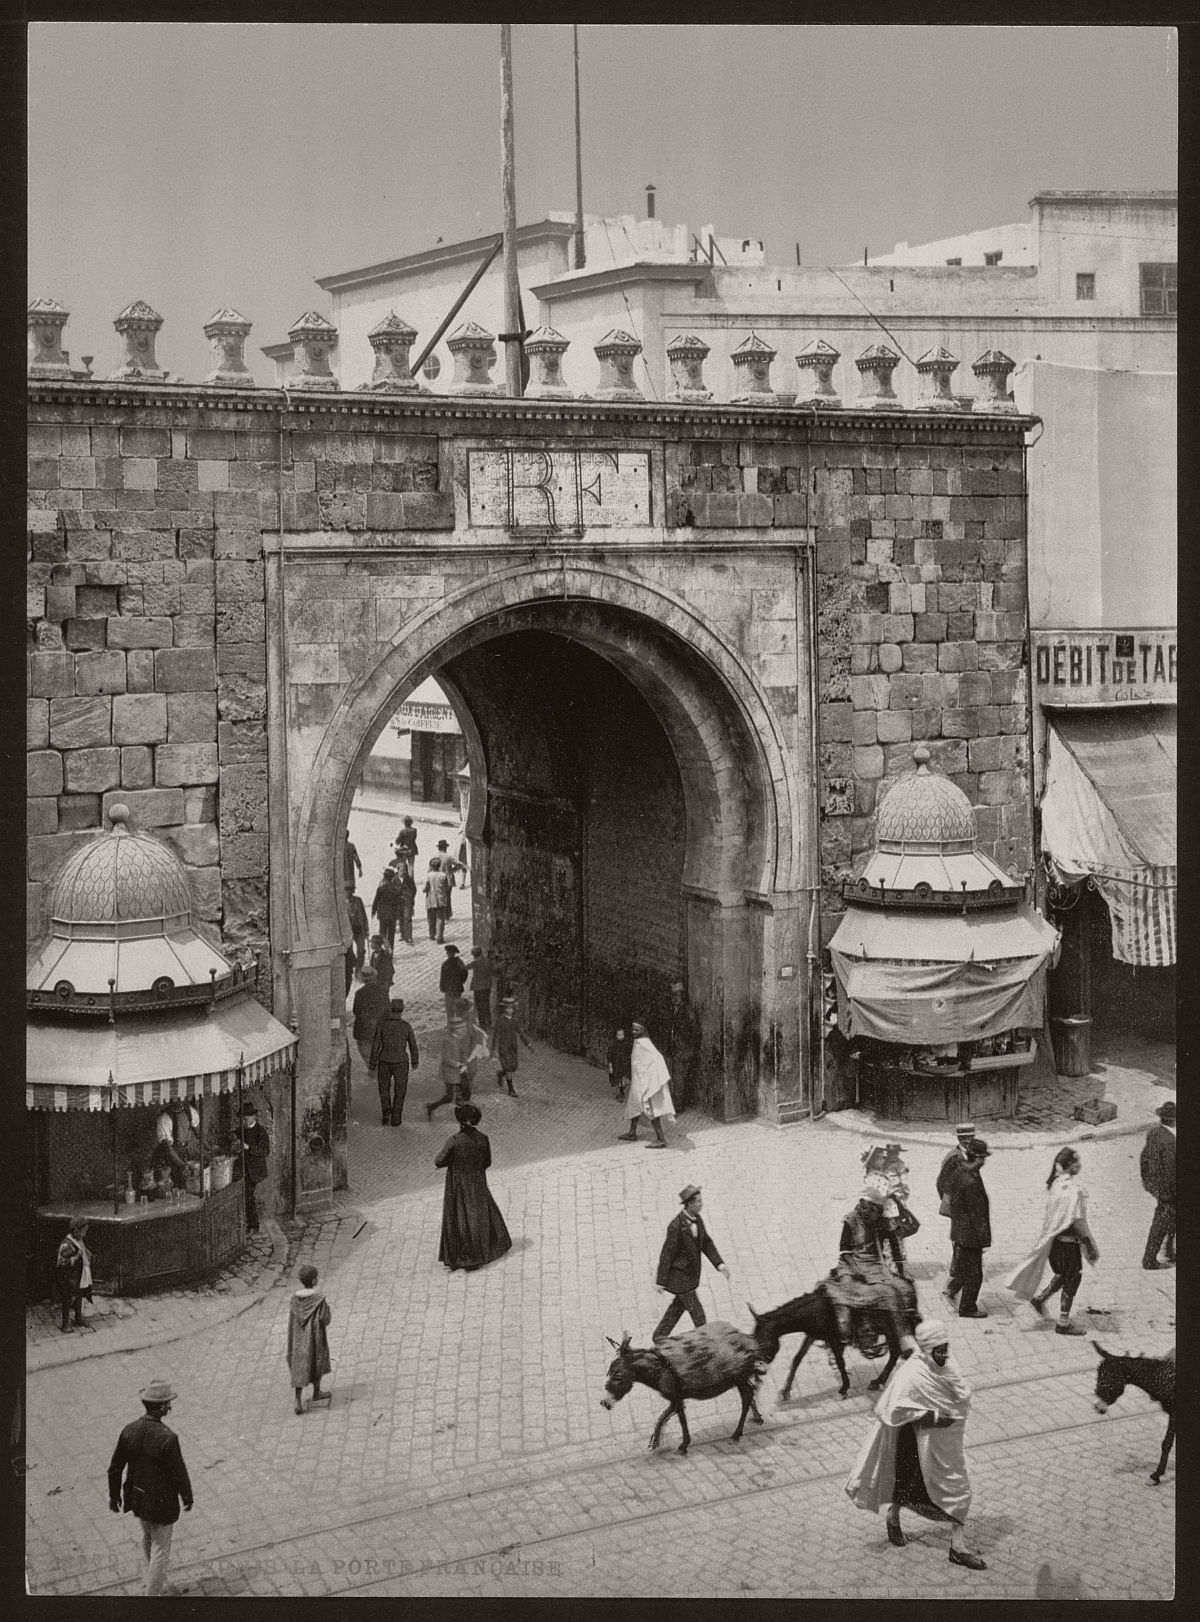 vintage-bw-photos-of-tunis-tunisia-late-19th-century-05